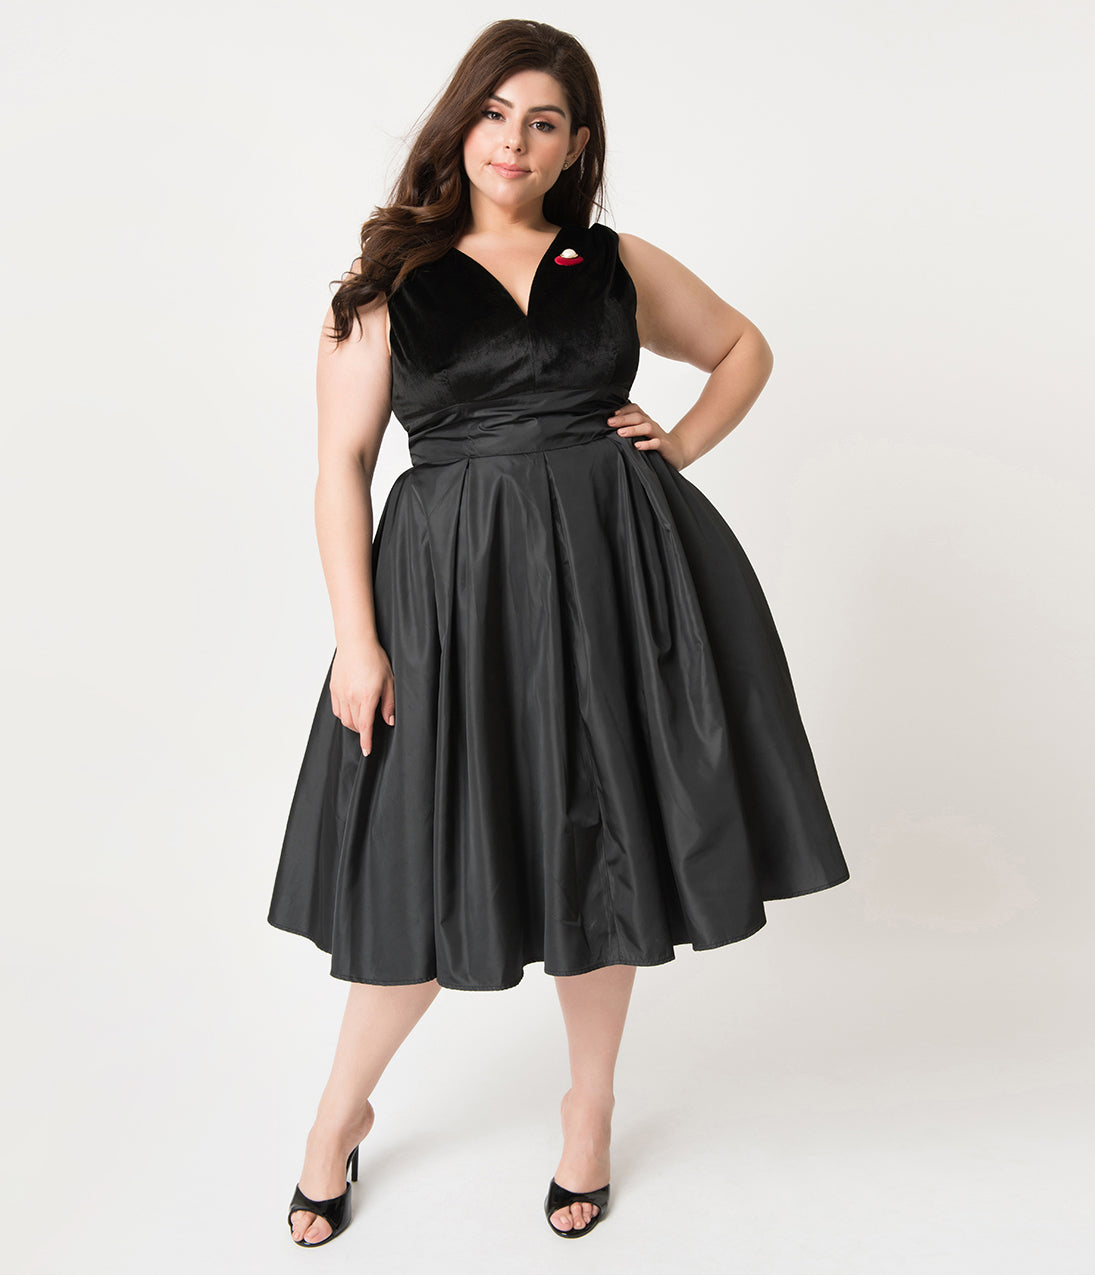 Plus Size Pin Up Dresses Rockabilly Unique Vintage 1950s Style: Plus Size Black Rockabilly Wedding Dresses At Reisefeber.org